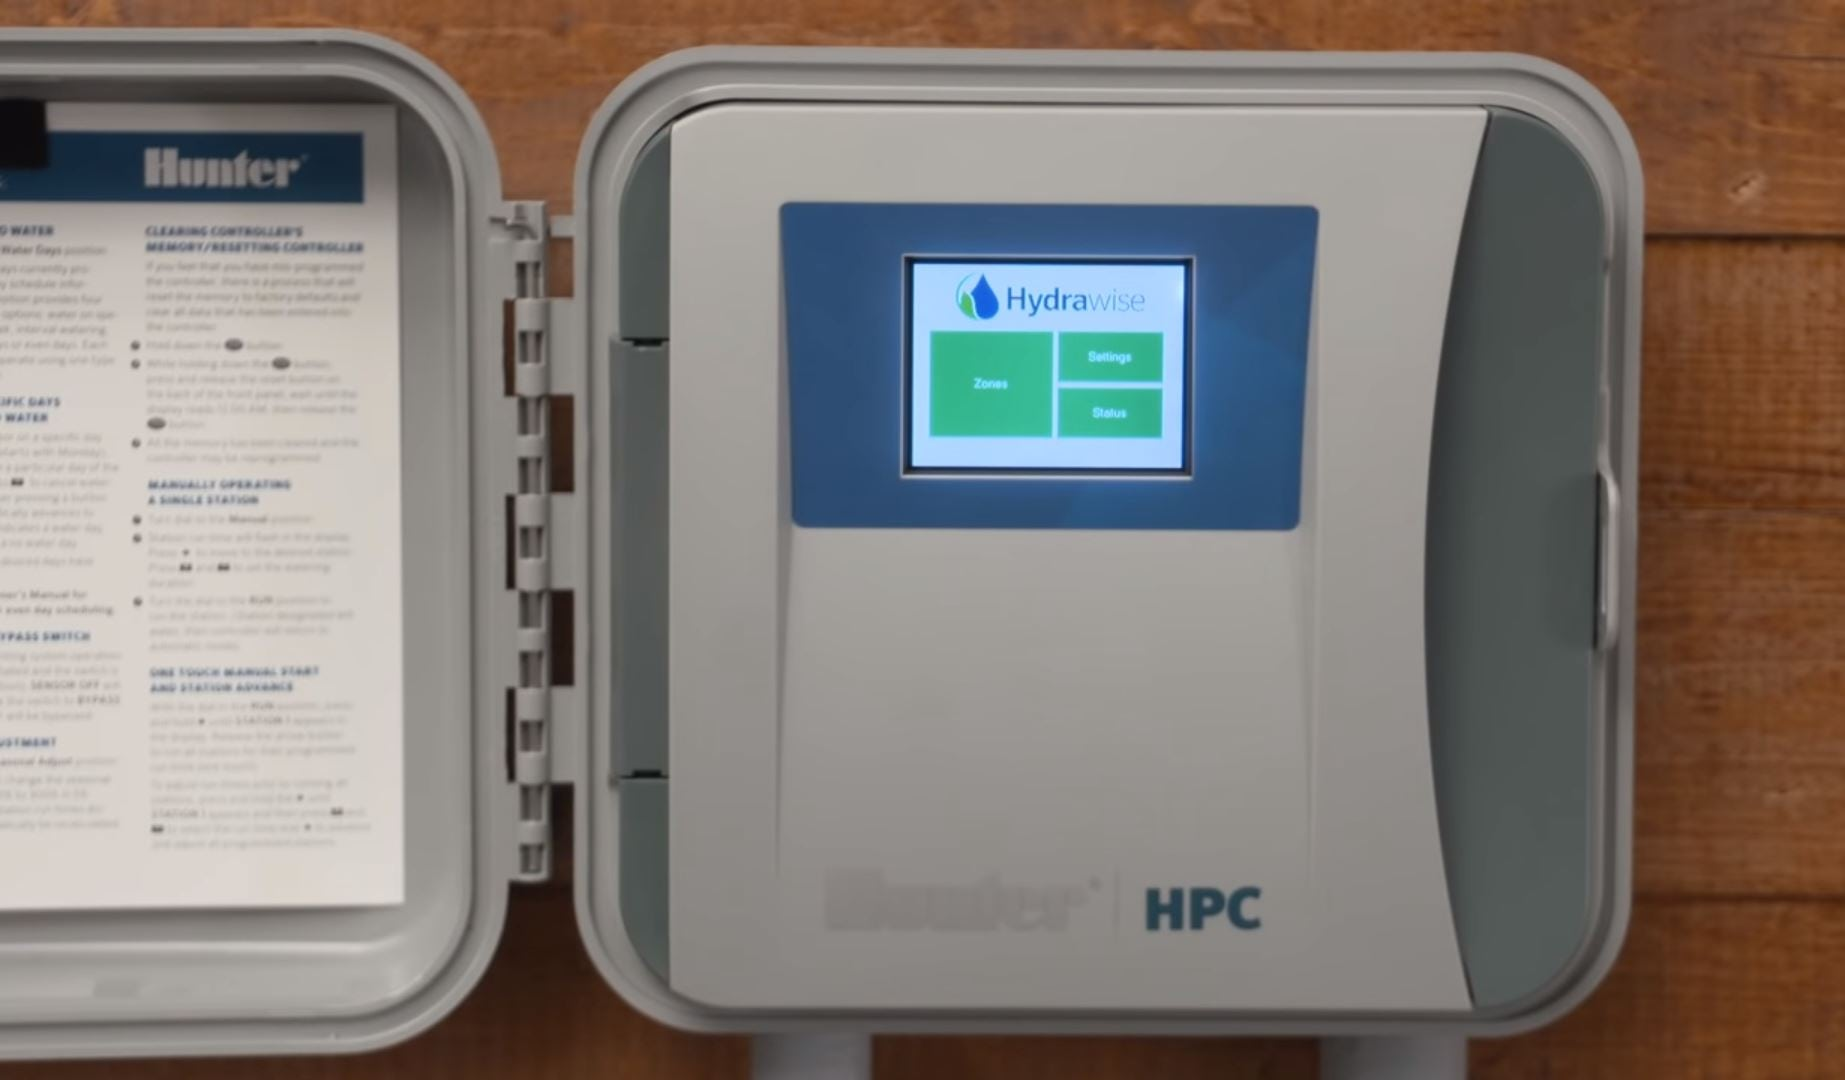 Hunter Pro-C Controllers Front Panel